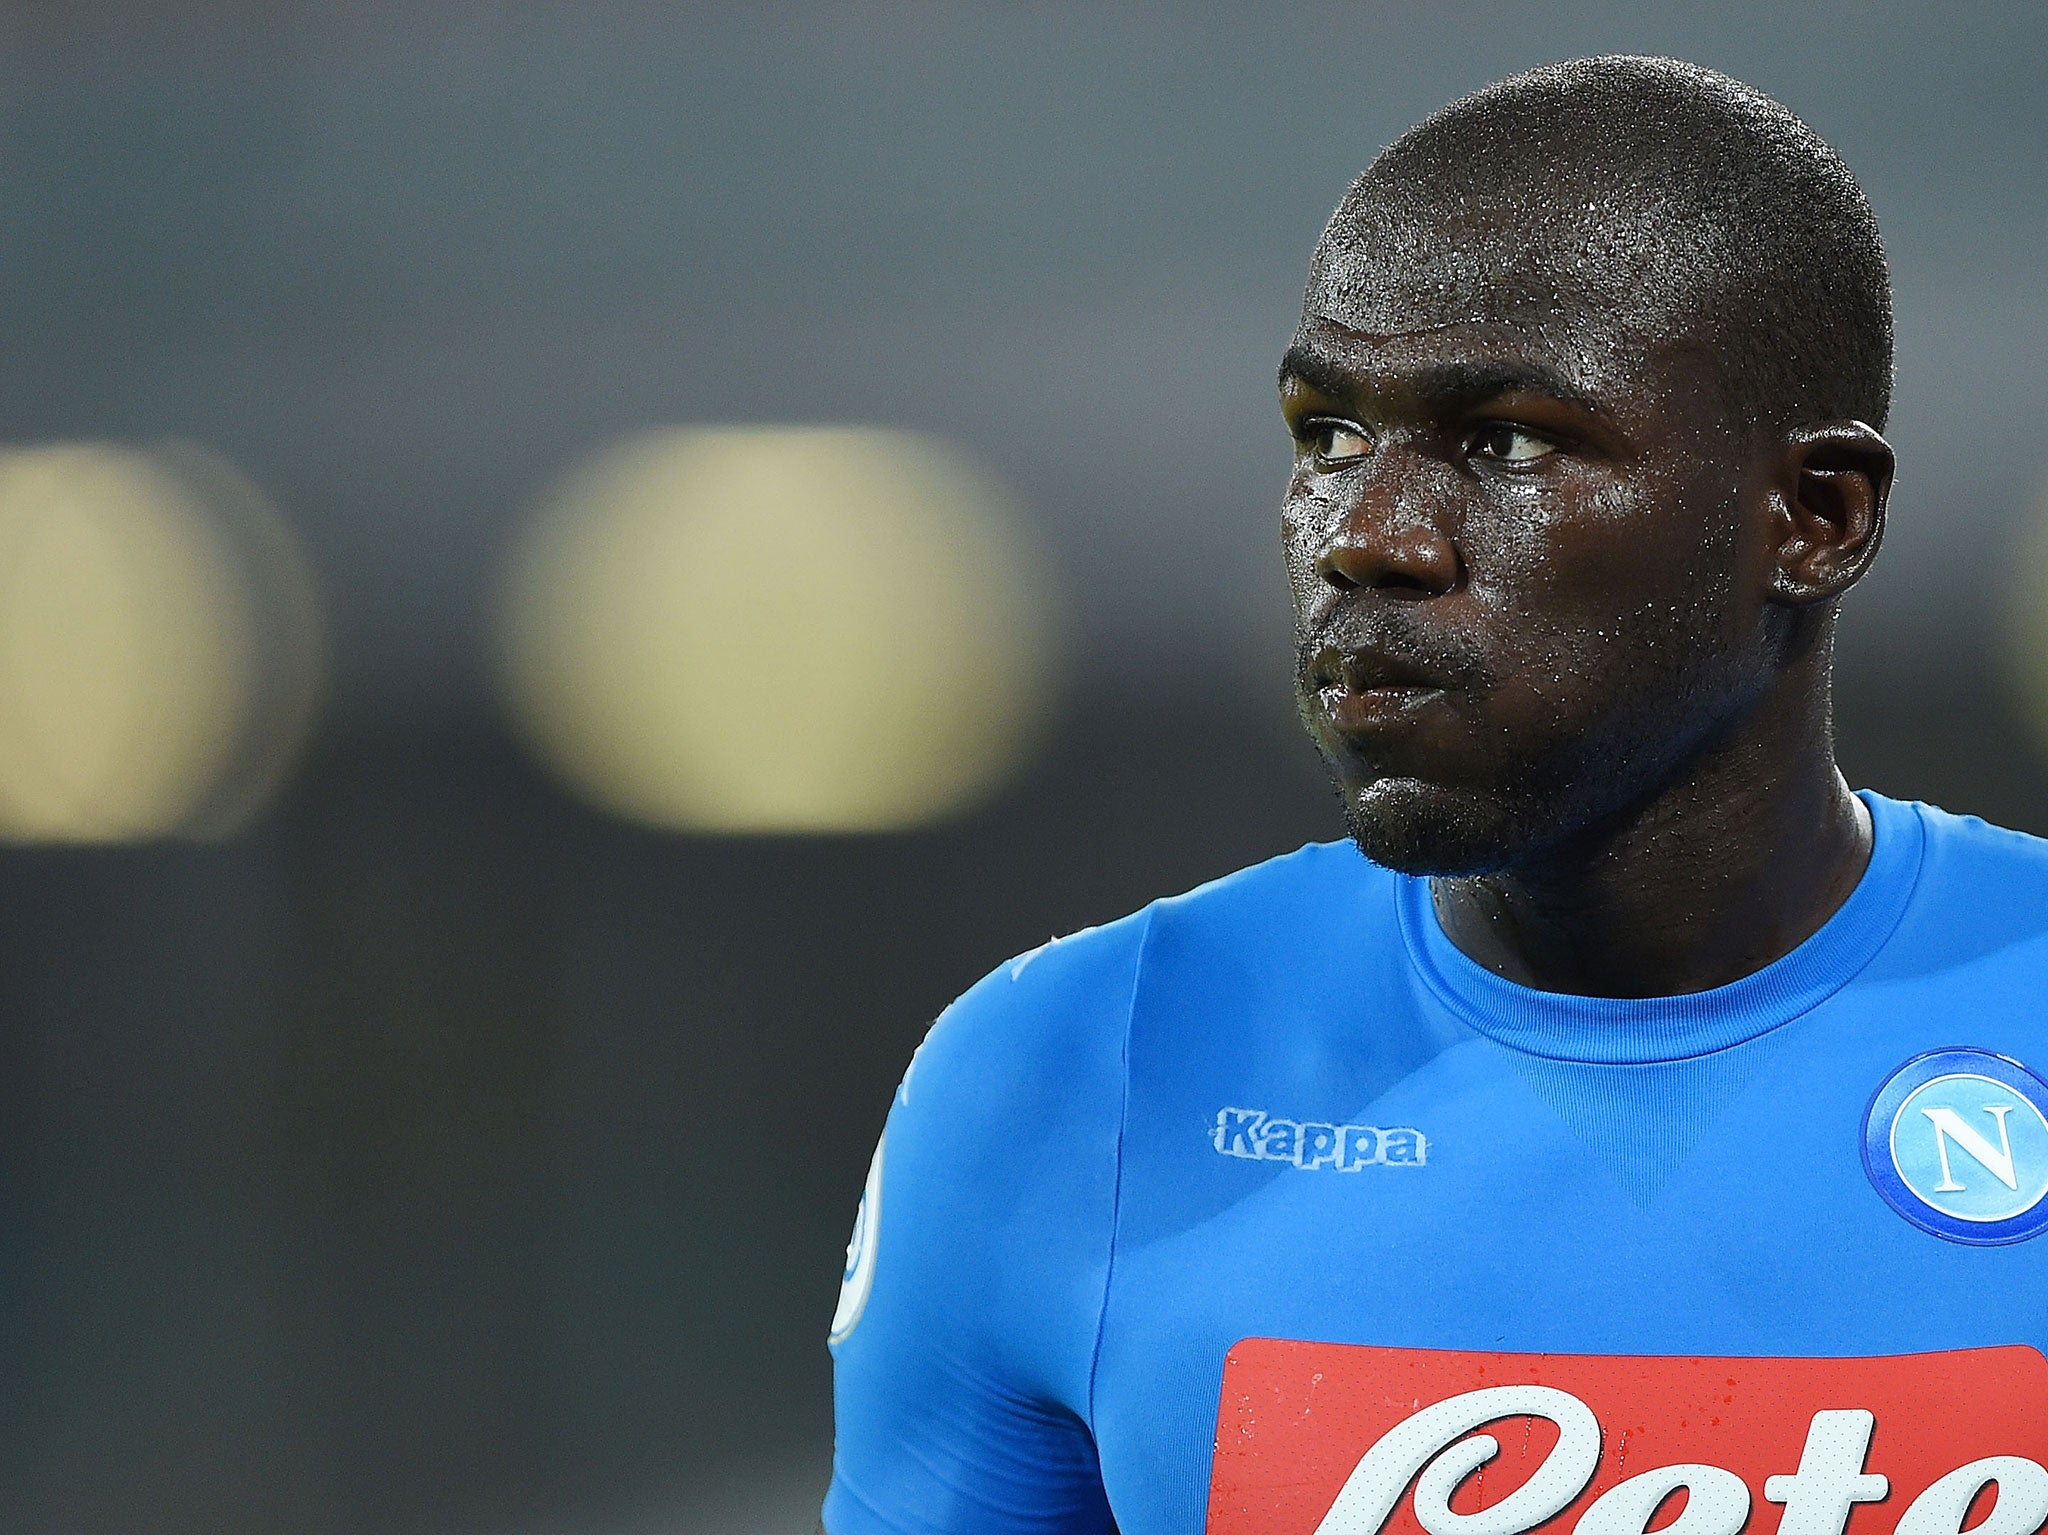 Transfer news and rumours: Chelsea ready '£60m' bid for Kalidou Koulibaly as Mario Balotelli 'considers' Wolves